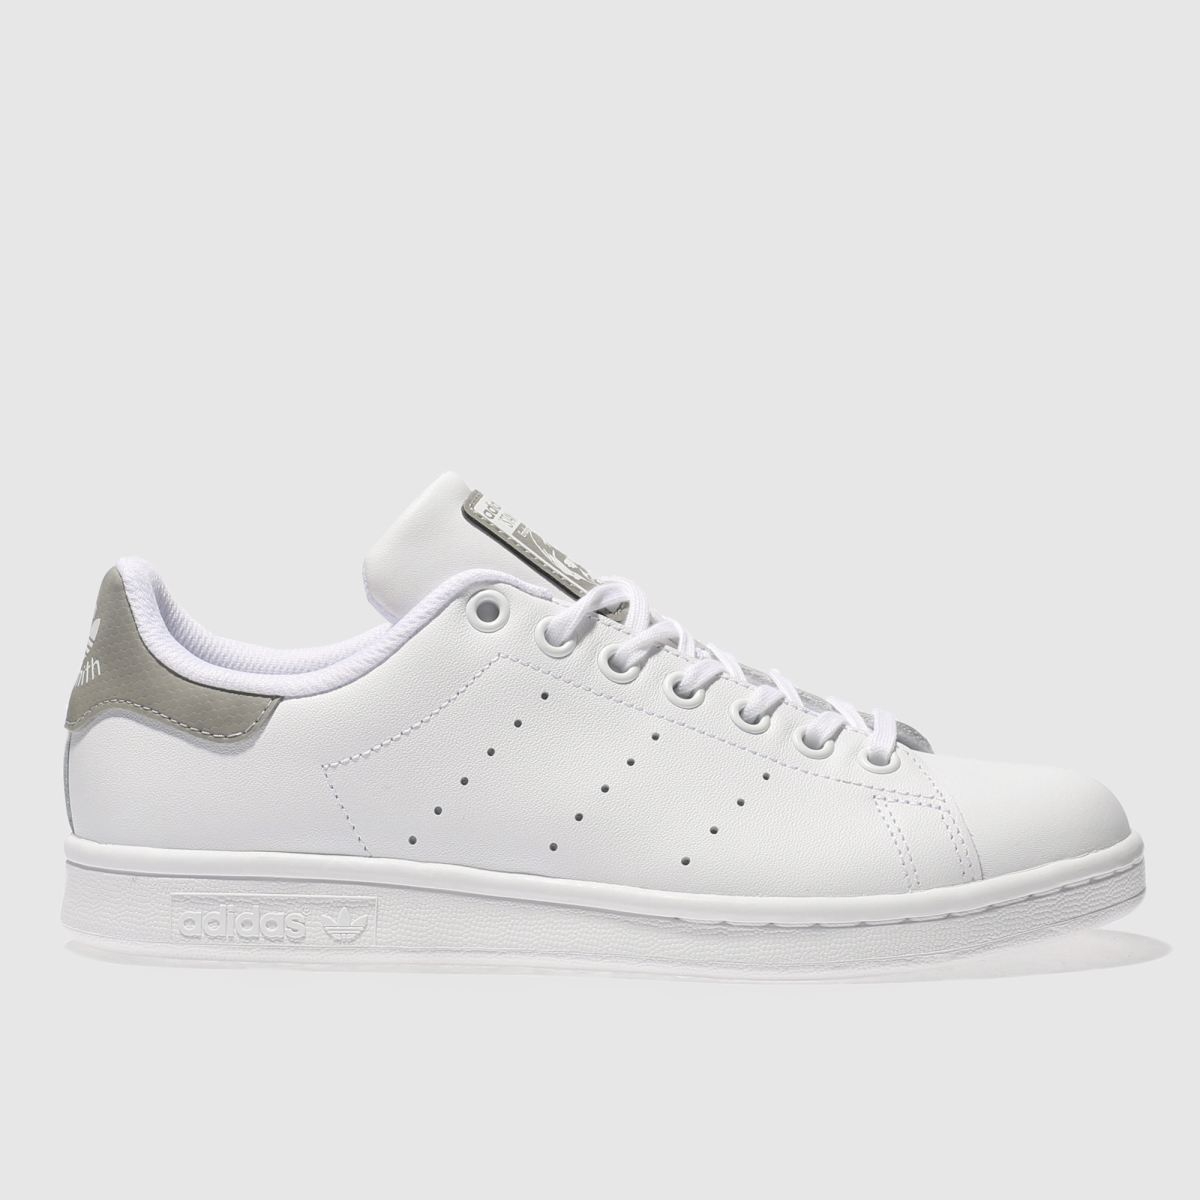 adidas white & grey stan smith Girls Youth Trainers